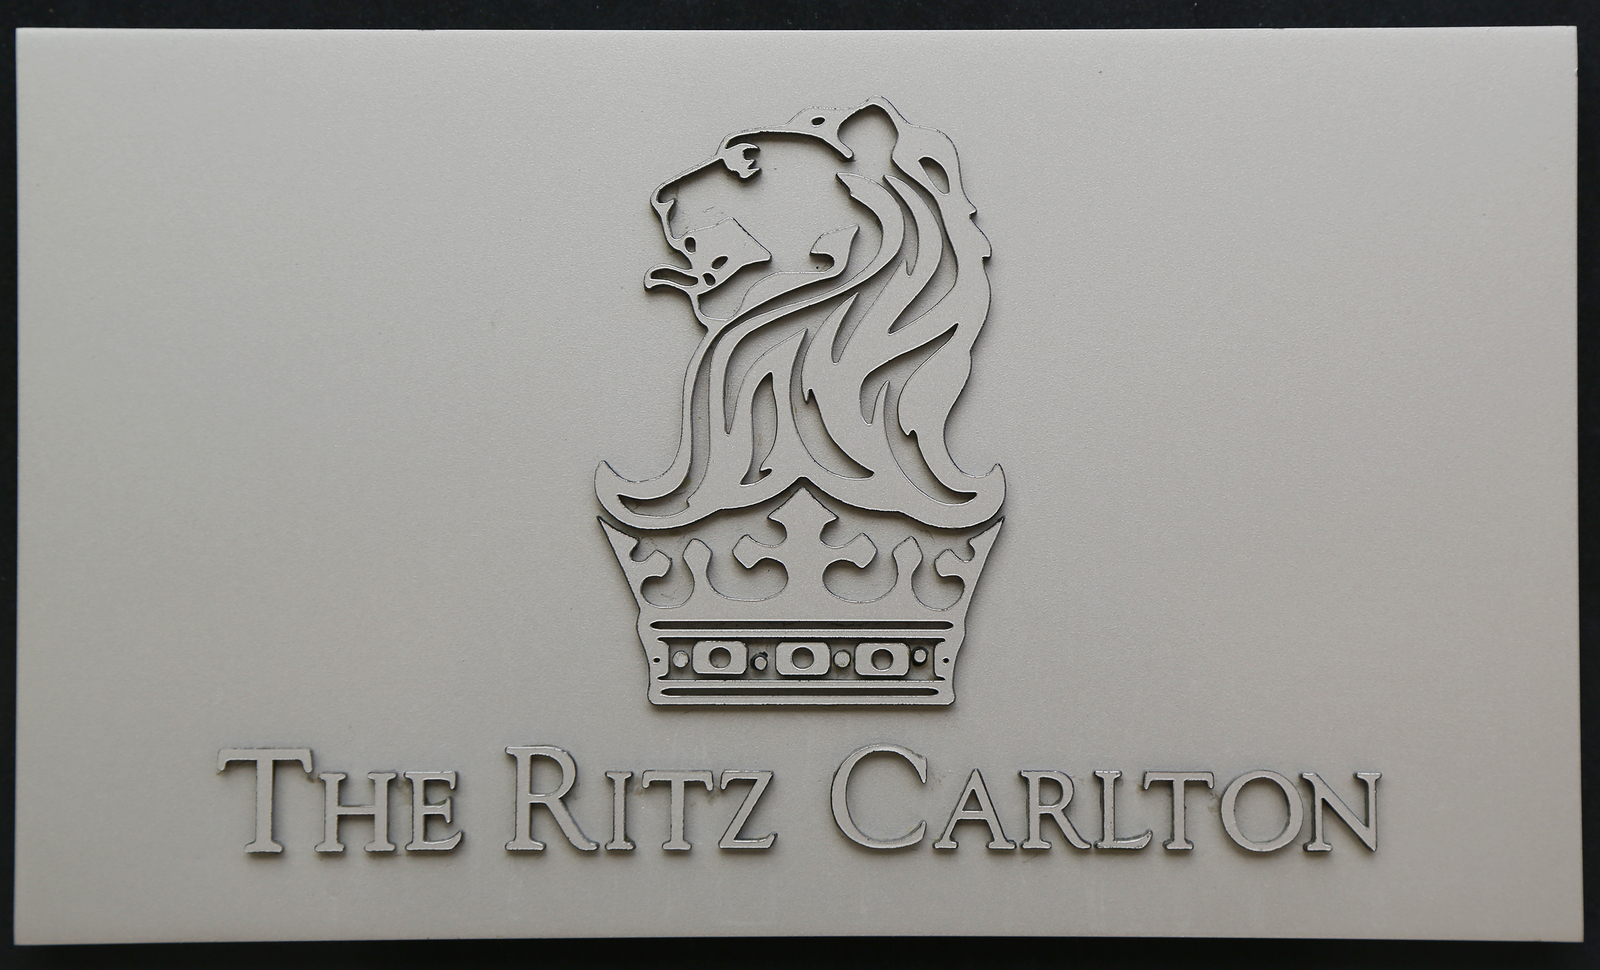 Ritz Carlton - Ritz-Carlton Hotel Bed Bug Attorneys